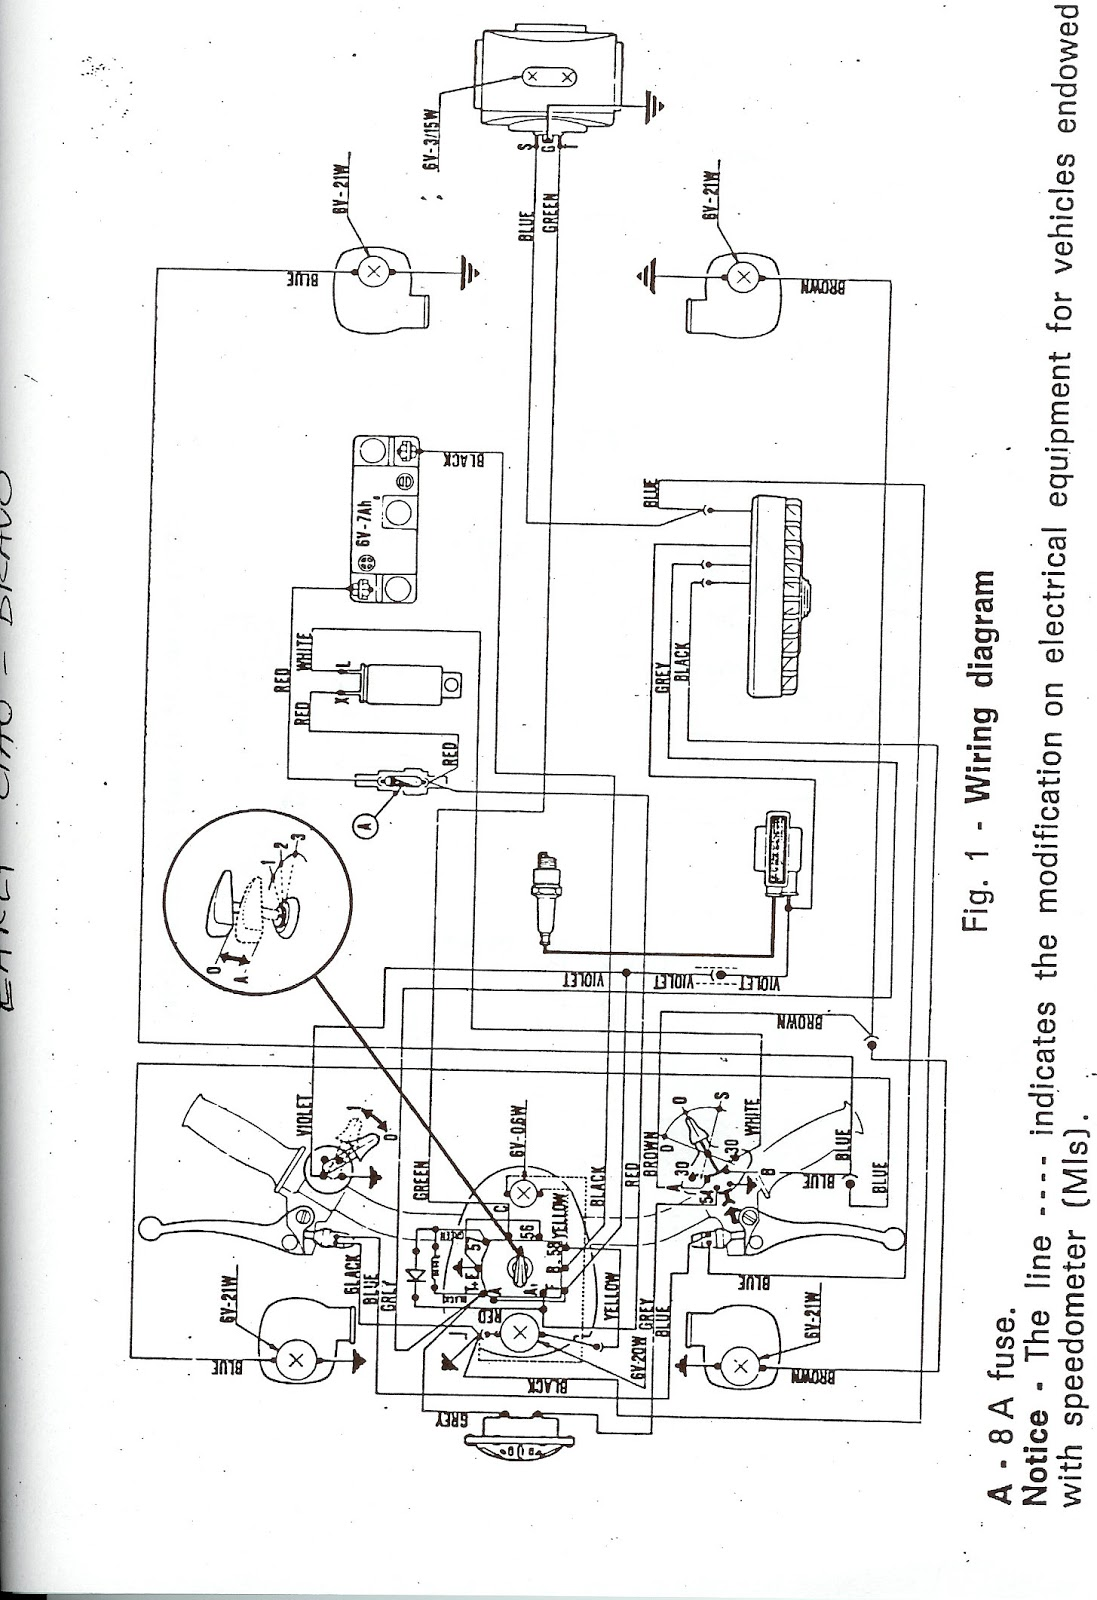 wiring diagram for vespa px